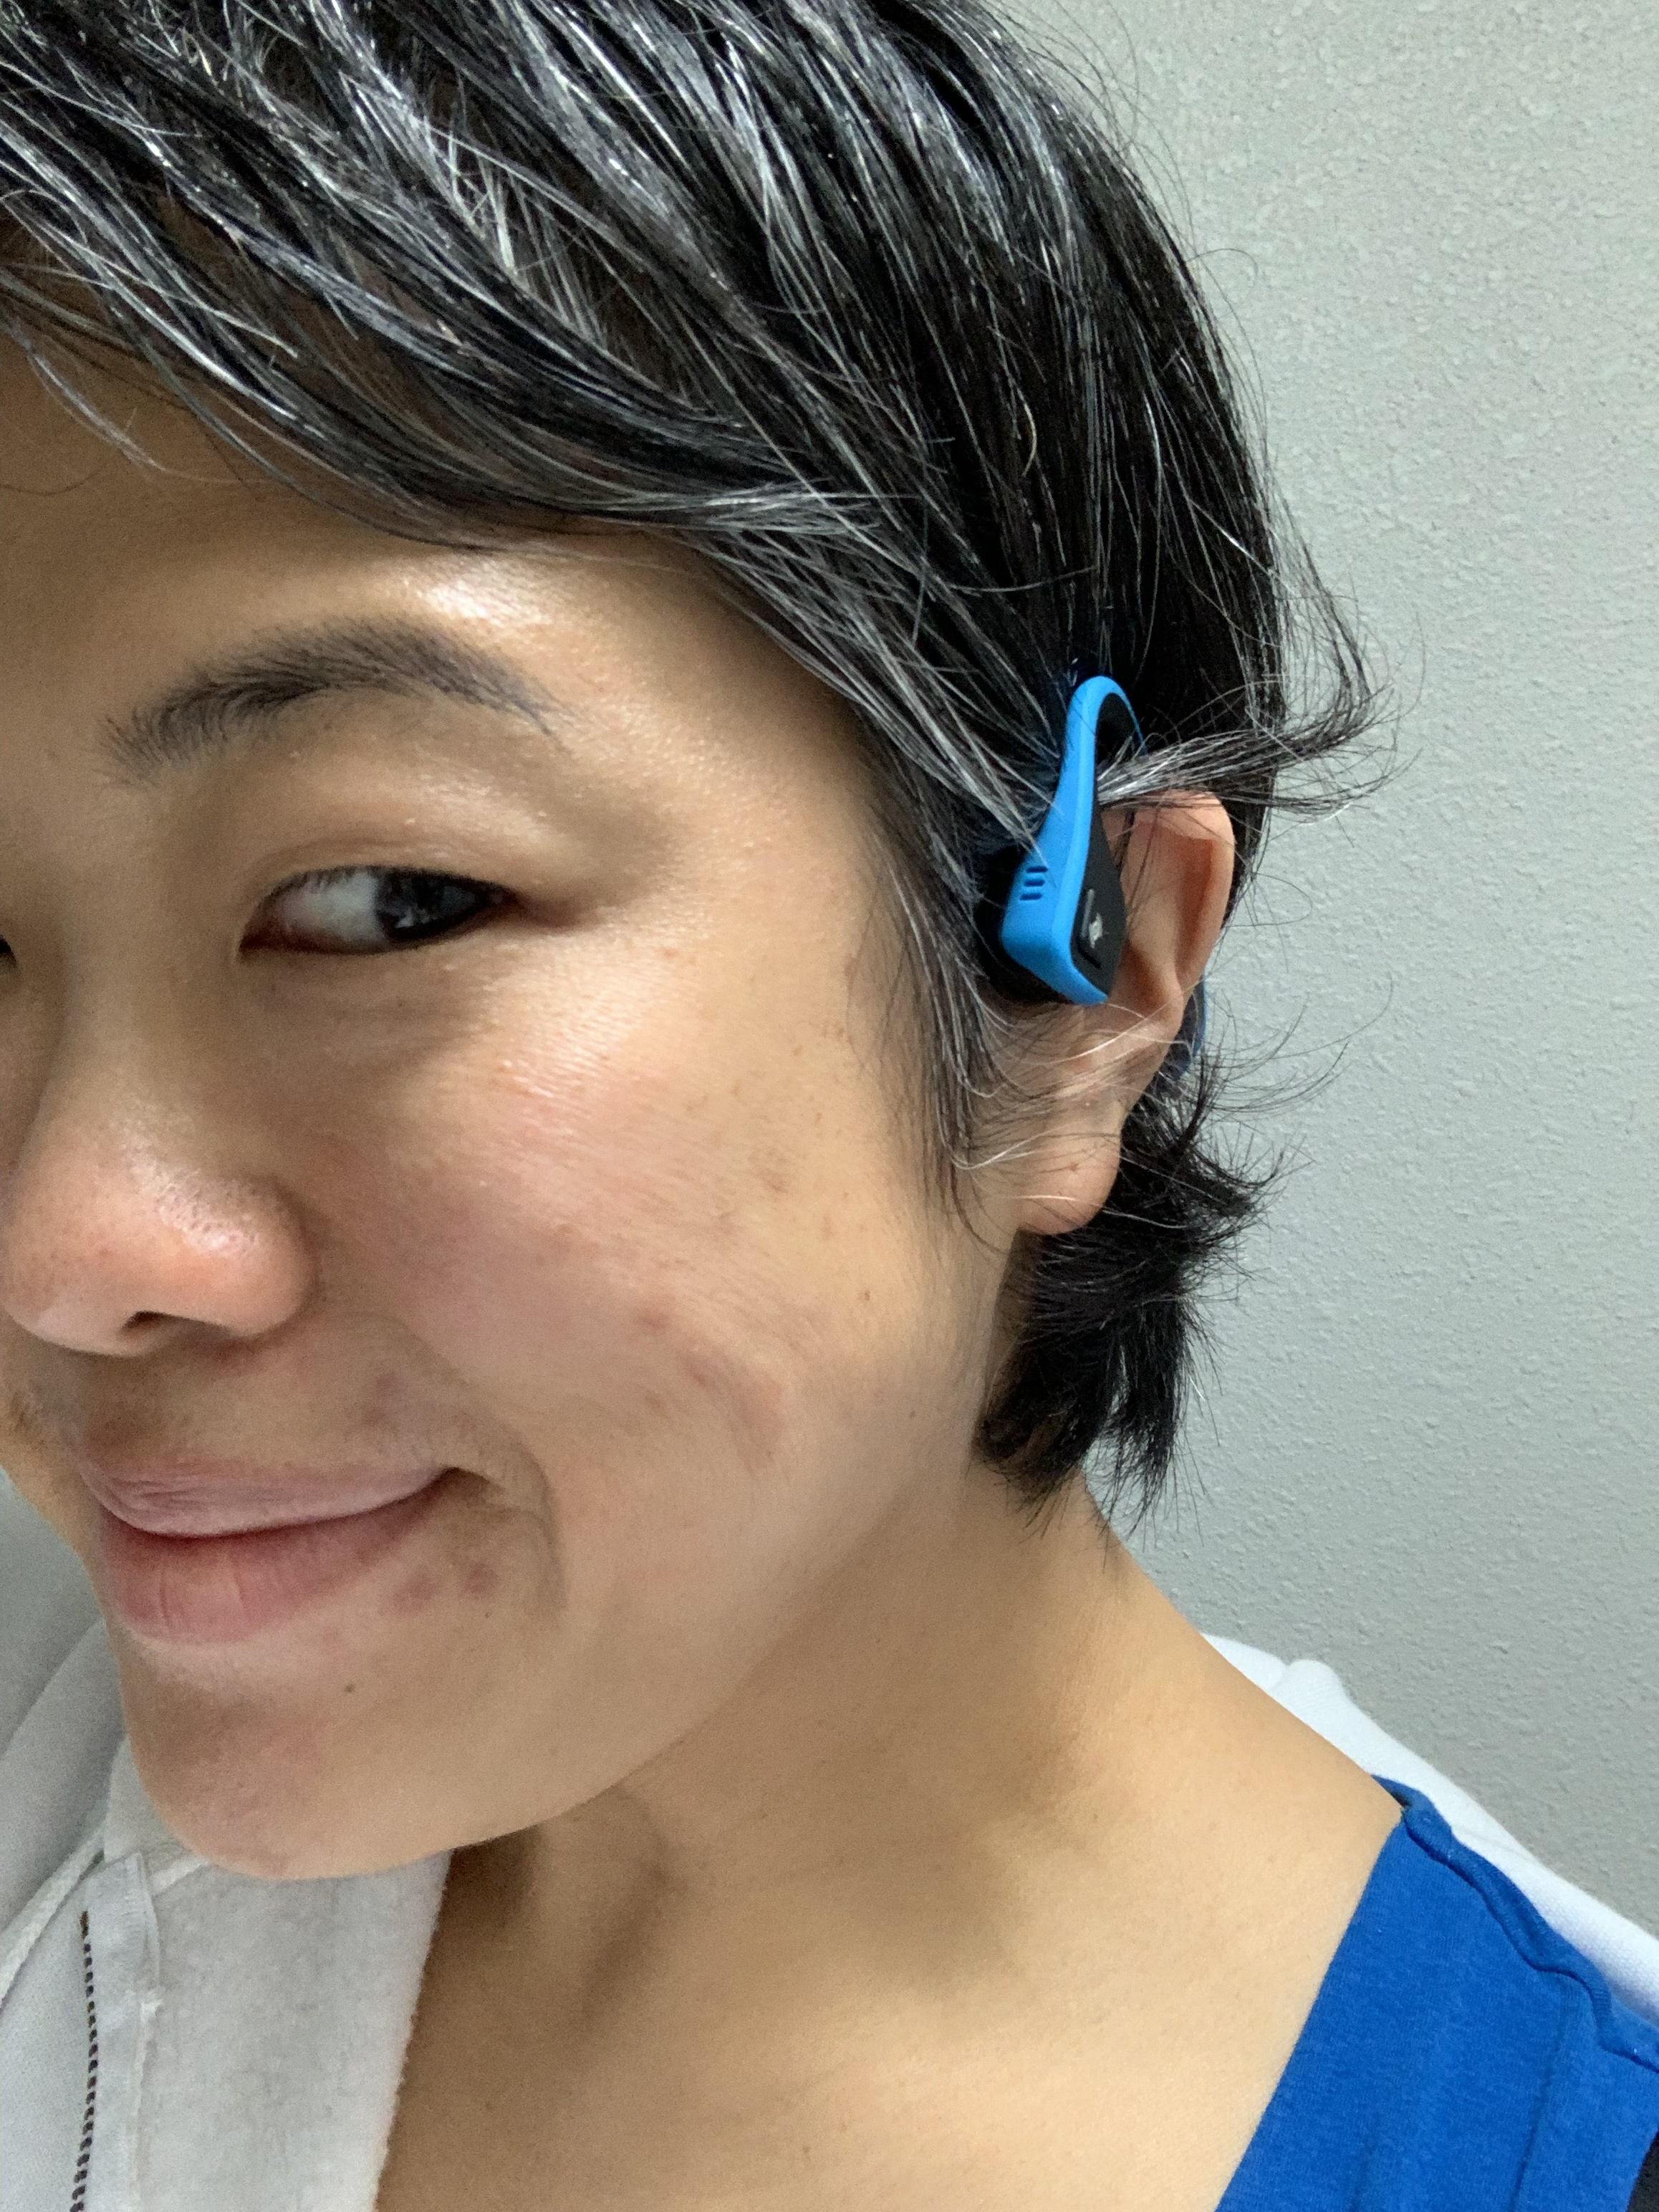 For those with smaller ears - We've been loyal customers of AfterShokz headphones for years now. They *never* fall out because it doesn't actually goes inside the ears. If you ever heard him swear at his headphones falling out, this is it! Gift it with a specially curated Father's Day playlist.